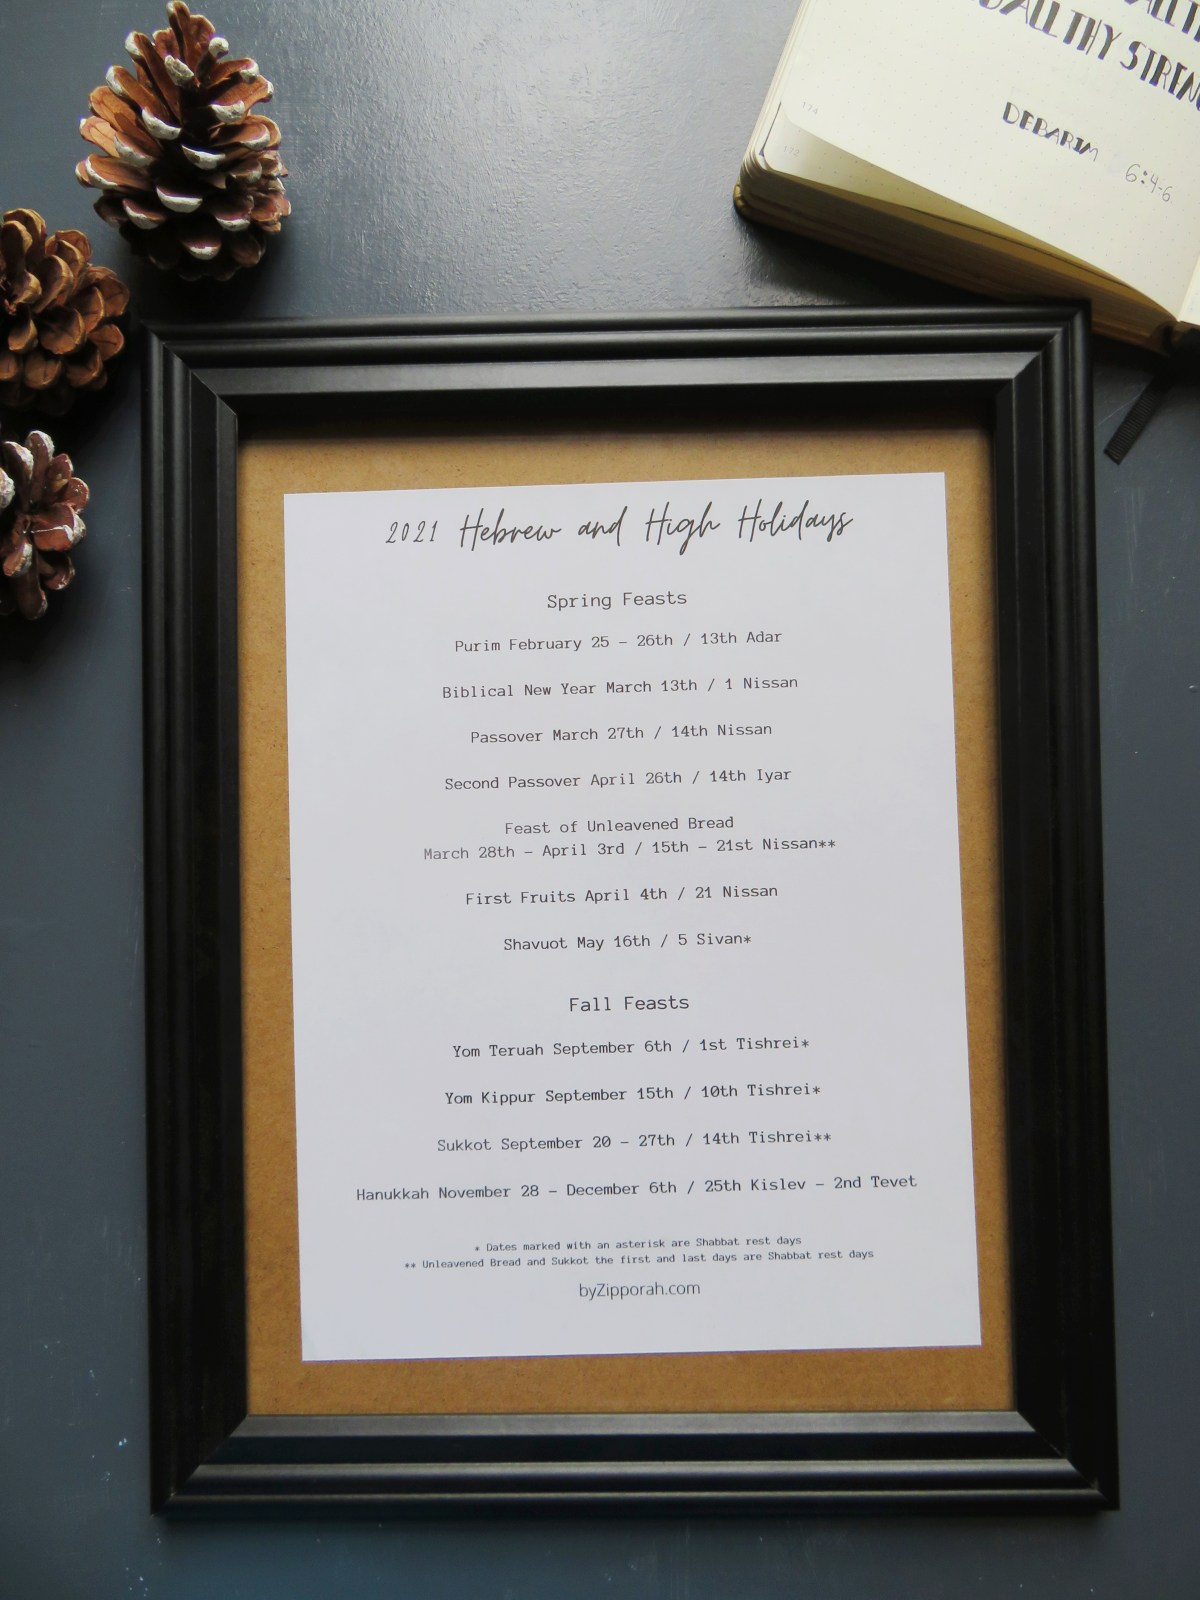 2021 Hebrew and High Holidays Printable in a picture frame.